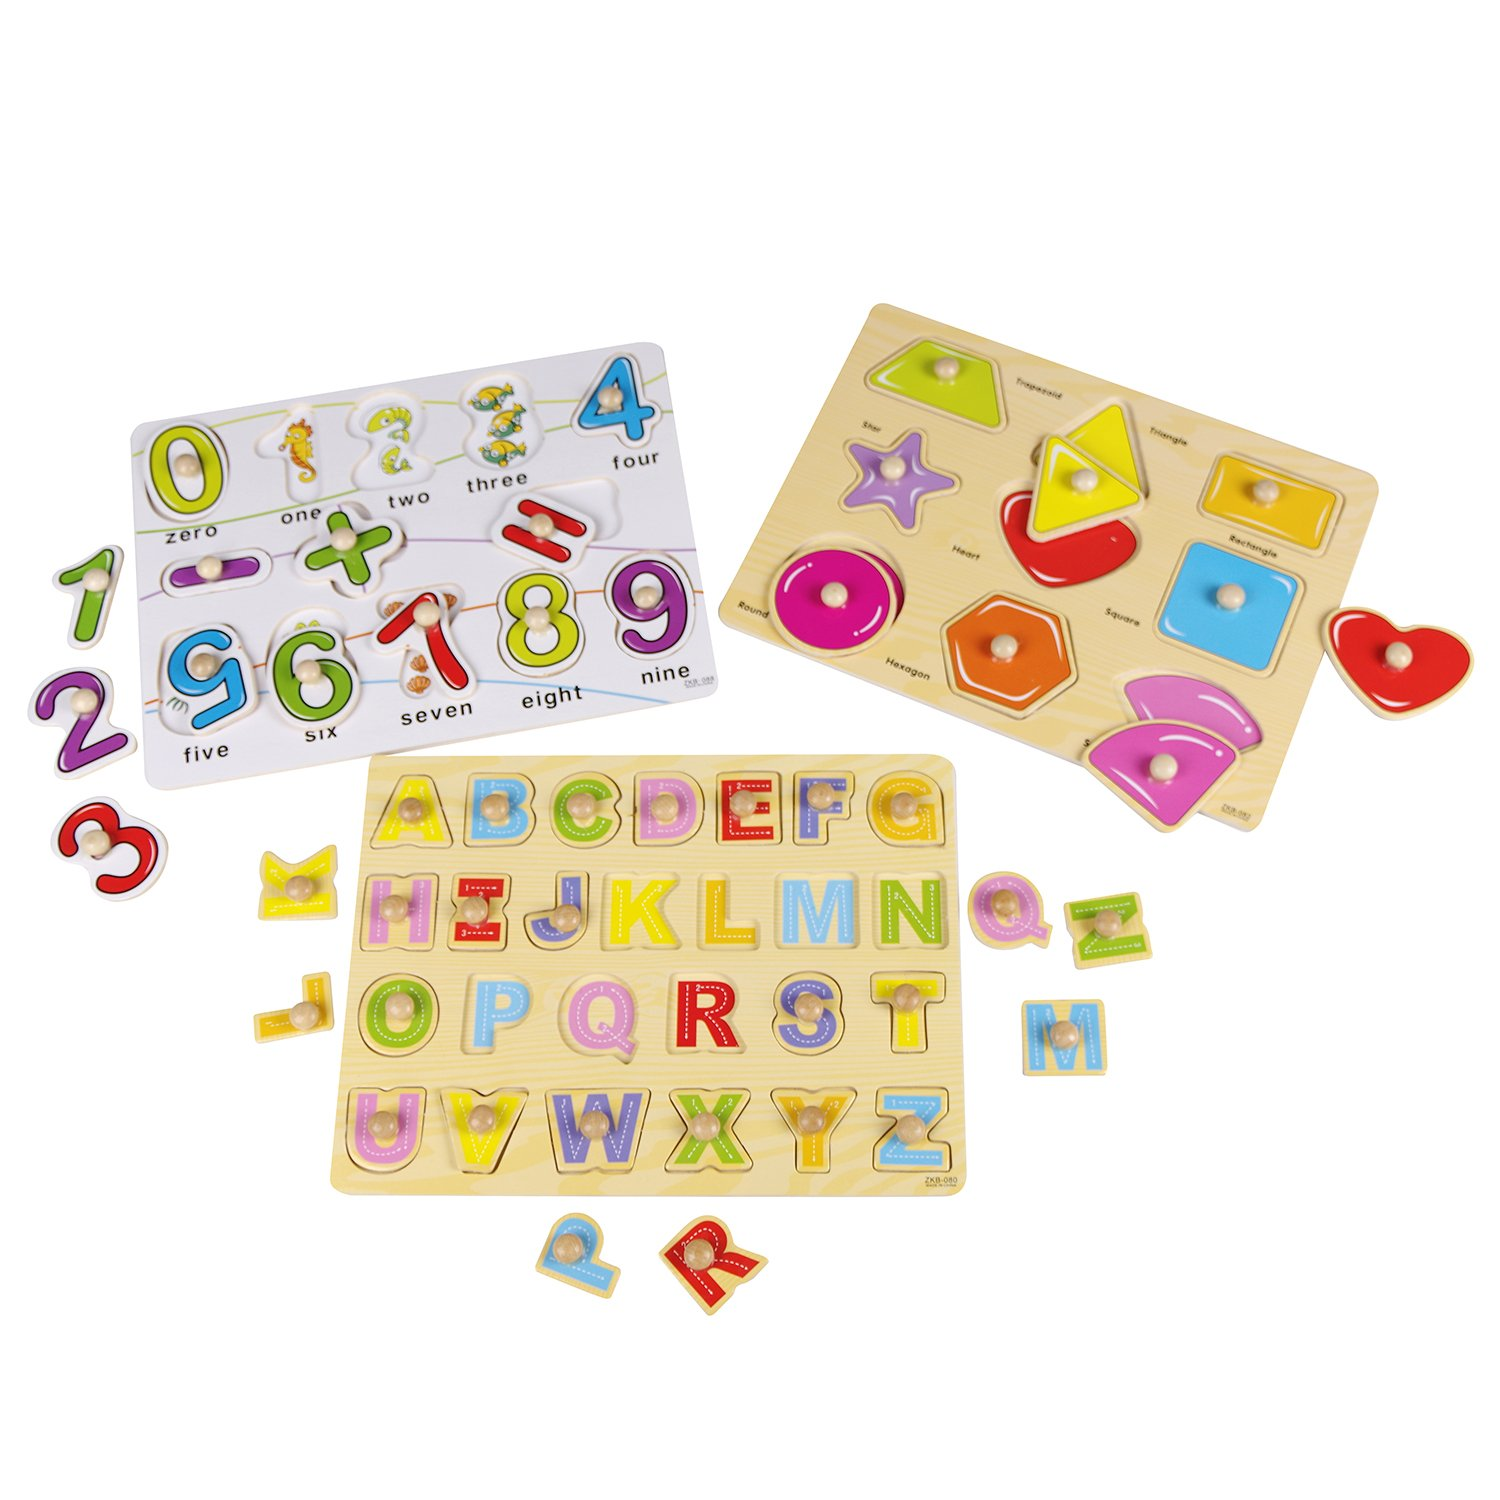 USATDD Kids Toddler Puzzles Wooden Peg Chunky Puzzles for 2 3 4 5 Years Old (Set of 3) - Numbers, Alphabet, and Shapes Puzzle Toy Board Game Cognitive Learning Gift New Version